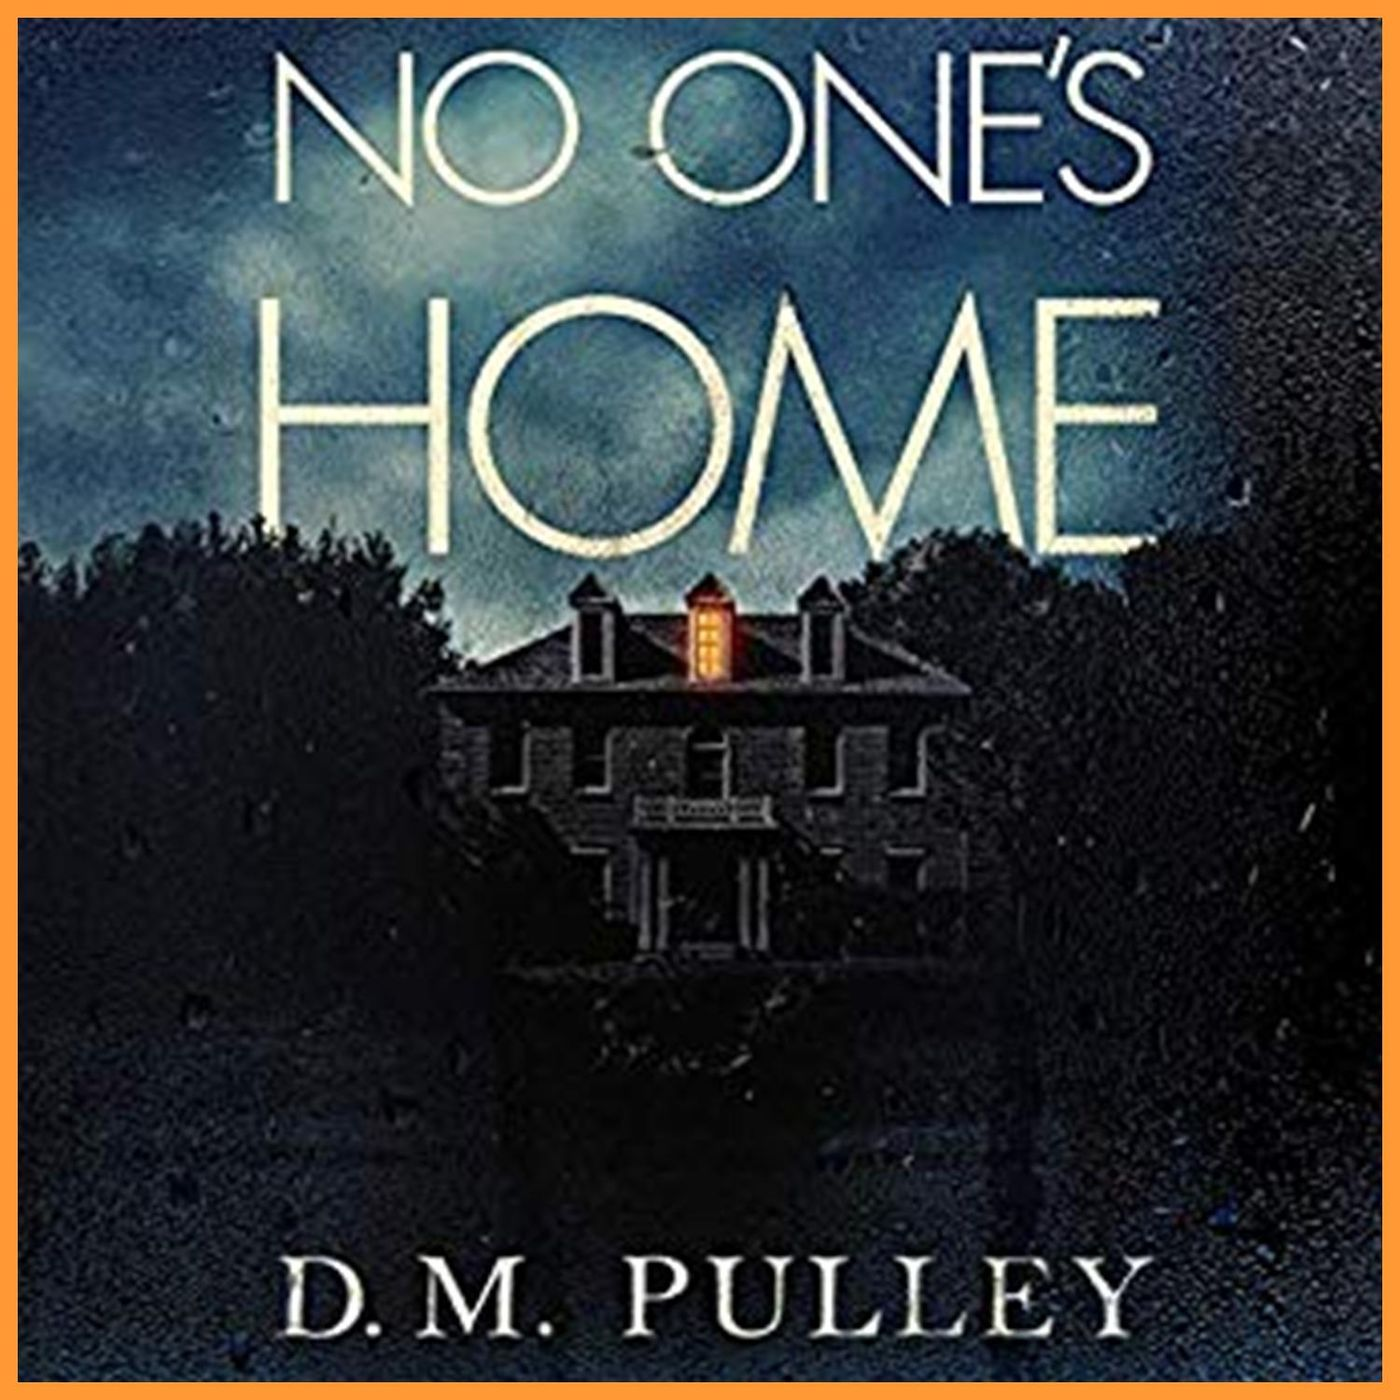 D.M. PULLEY - No One's Home